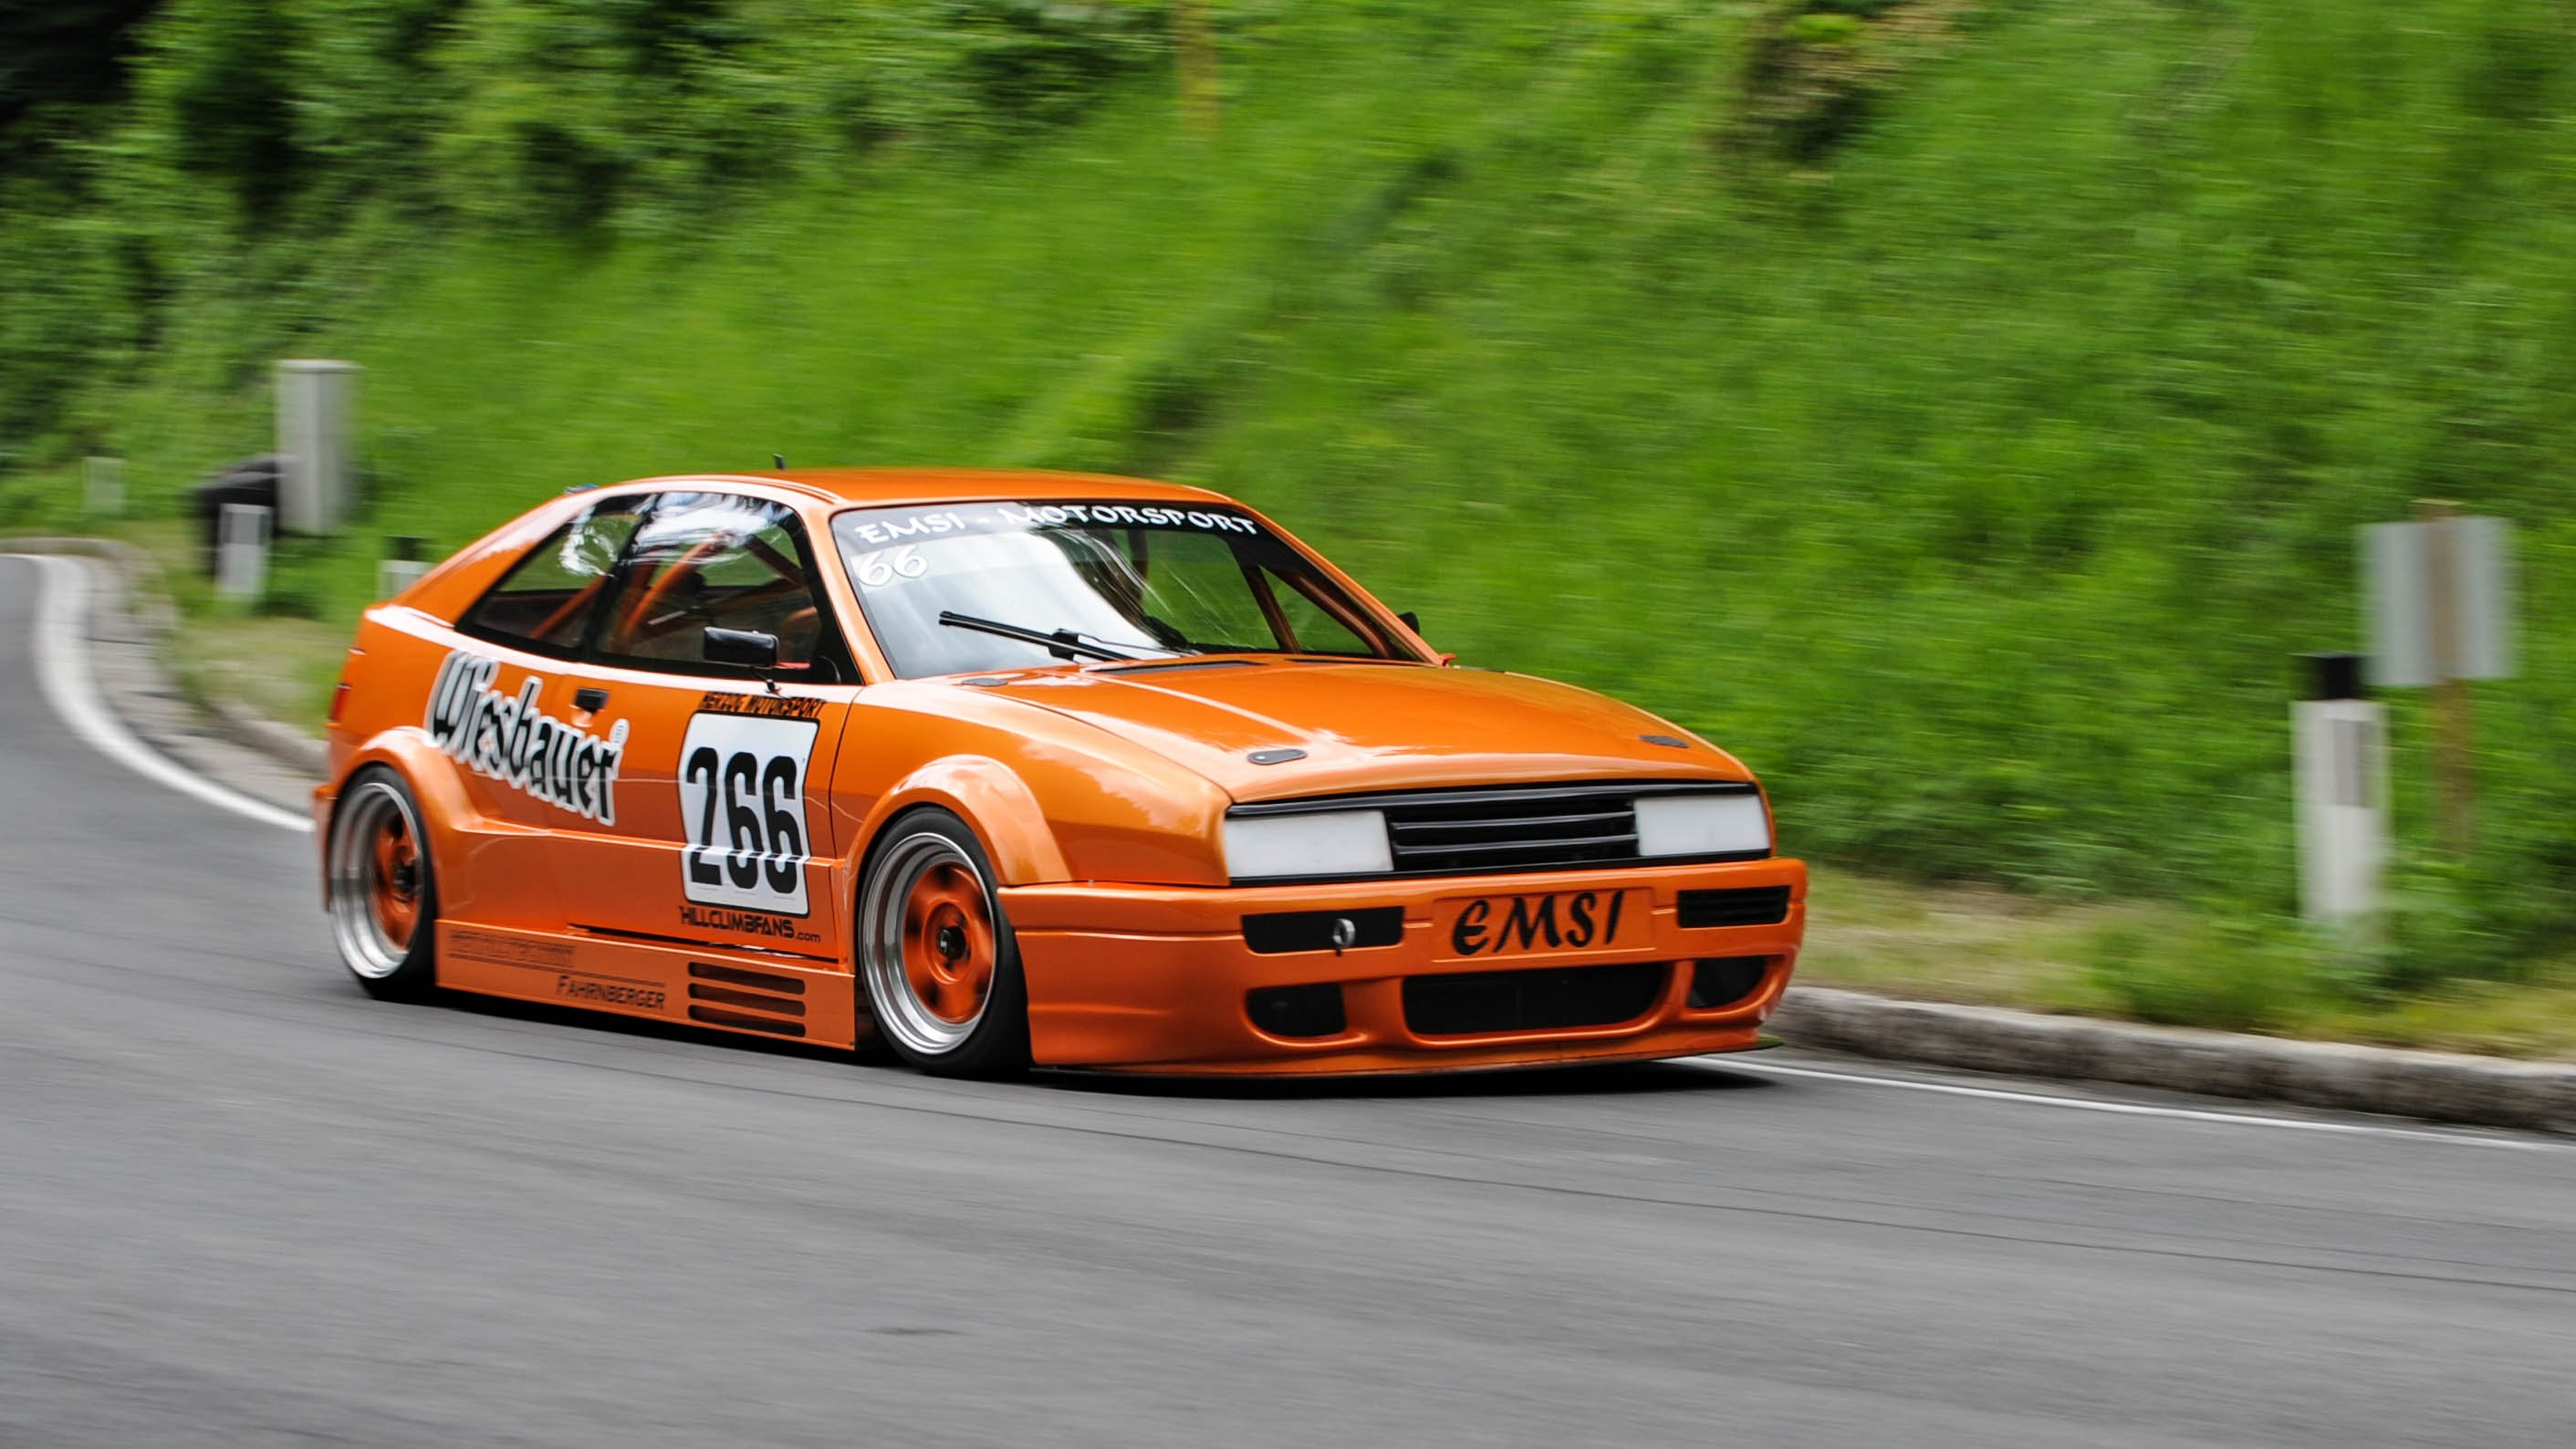 Volkswagen Corrado Slc Vr6 The Geriatric German Grand